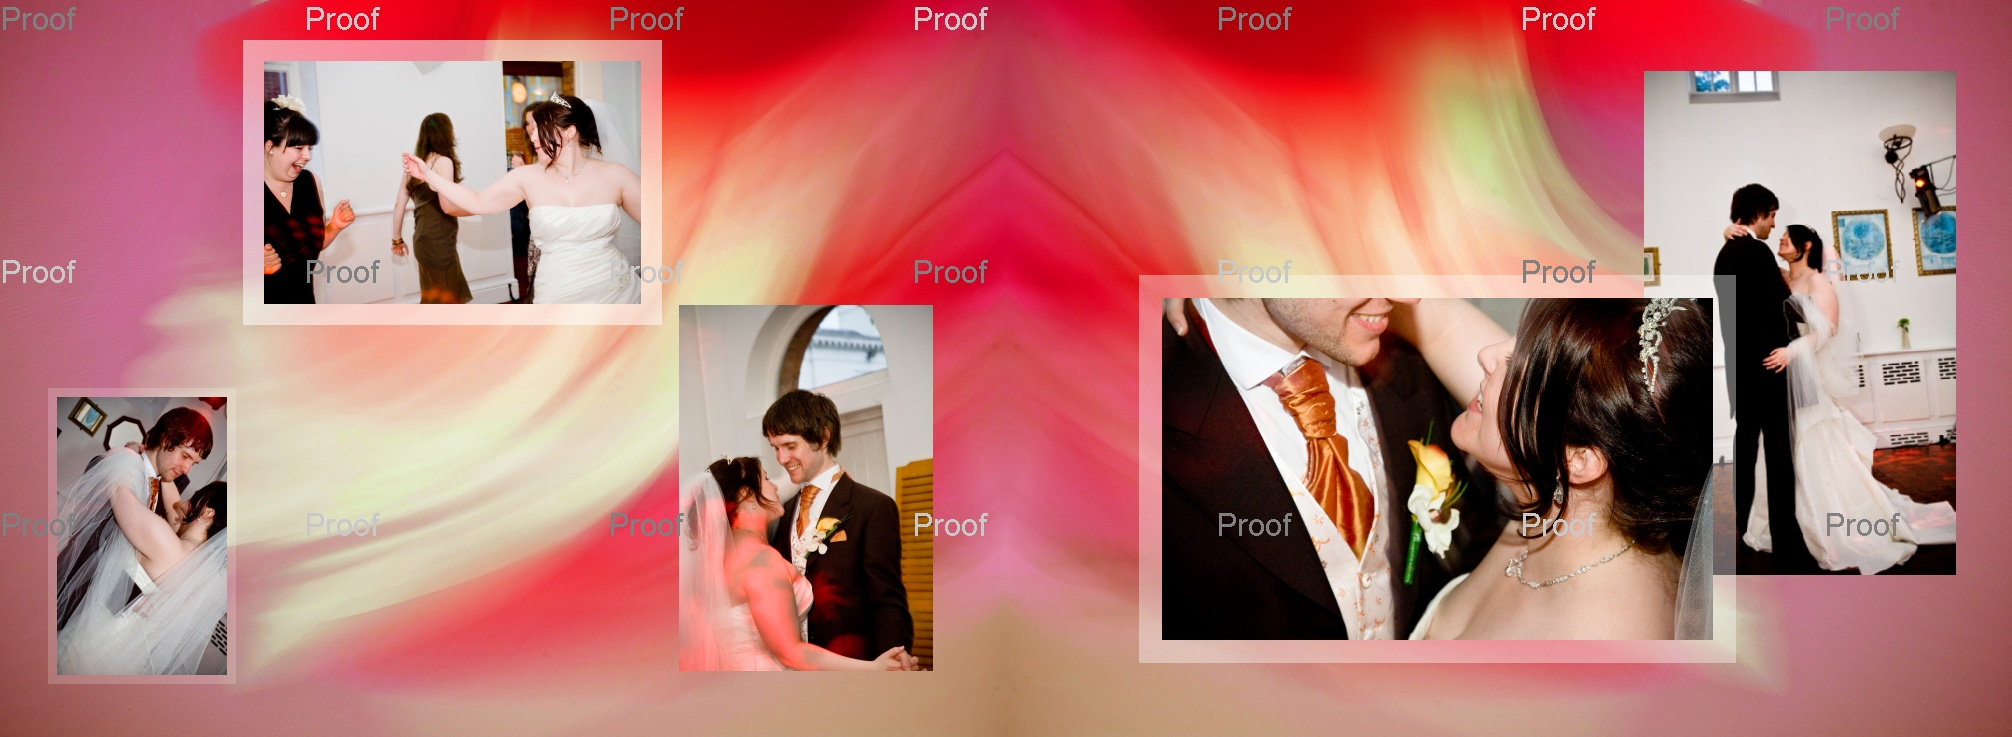 pages 78-79 wedding storybook with Louise & Martin's first dance at evening wedding reception in Manchester